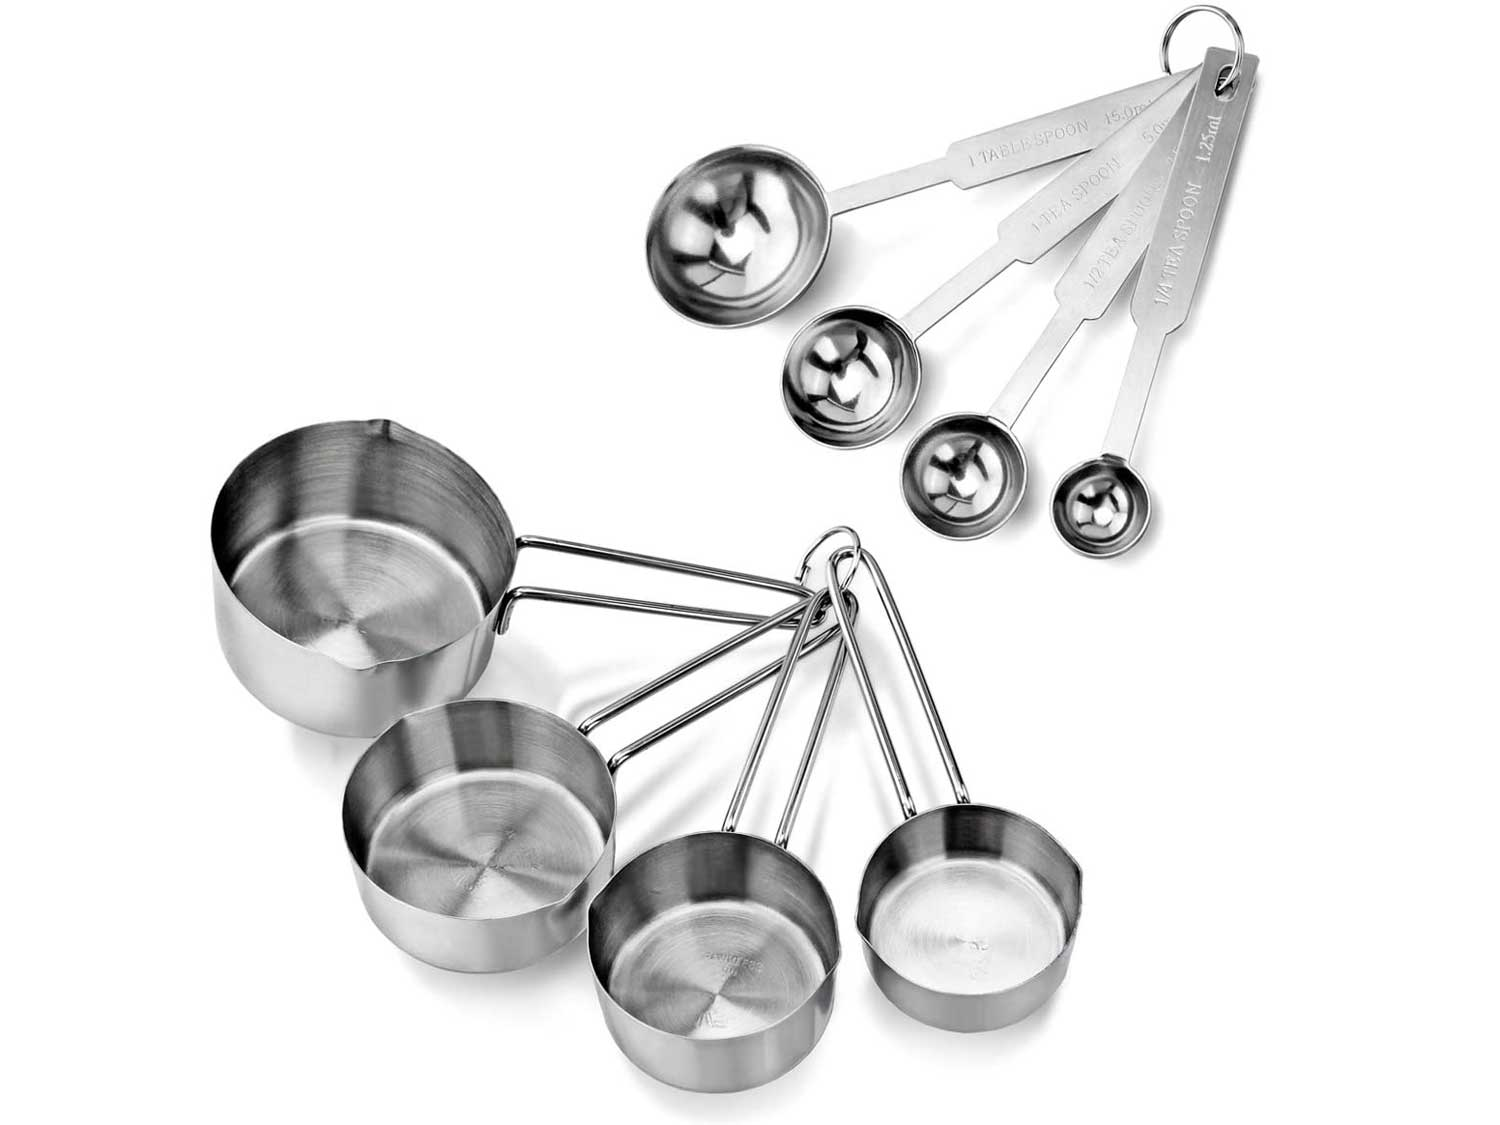 New Star Foodservice 42917 Stainless Steel Measuring Spoons and Measuring Cups Combo